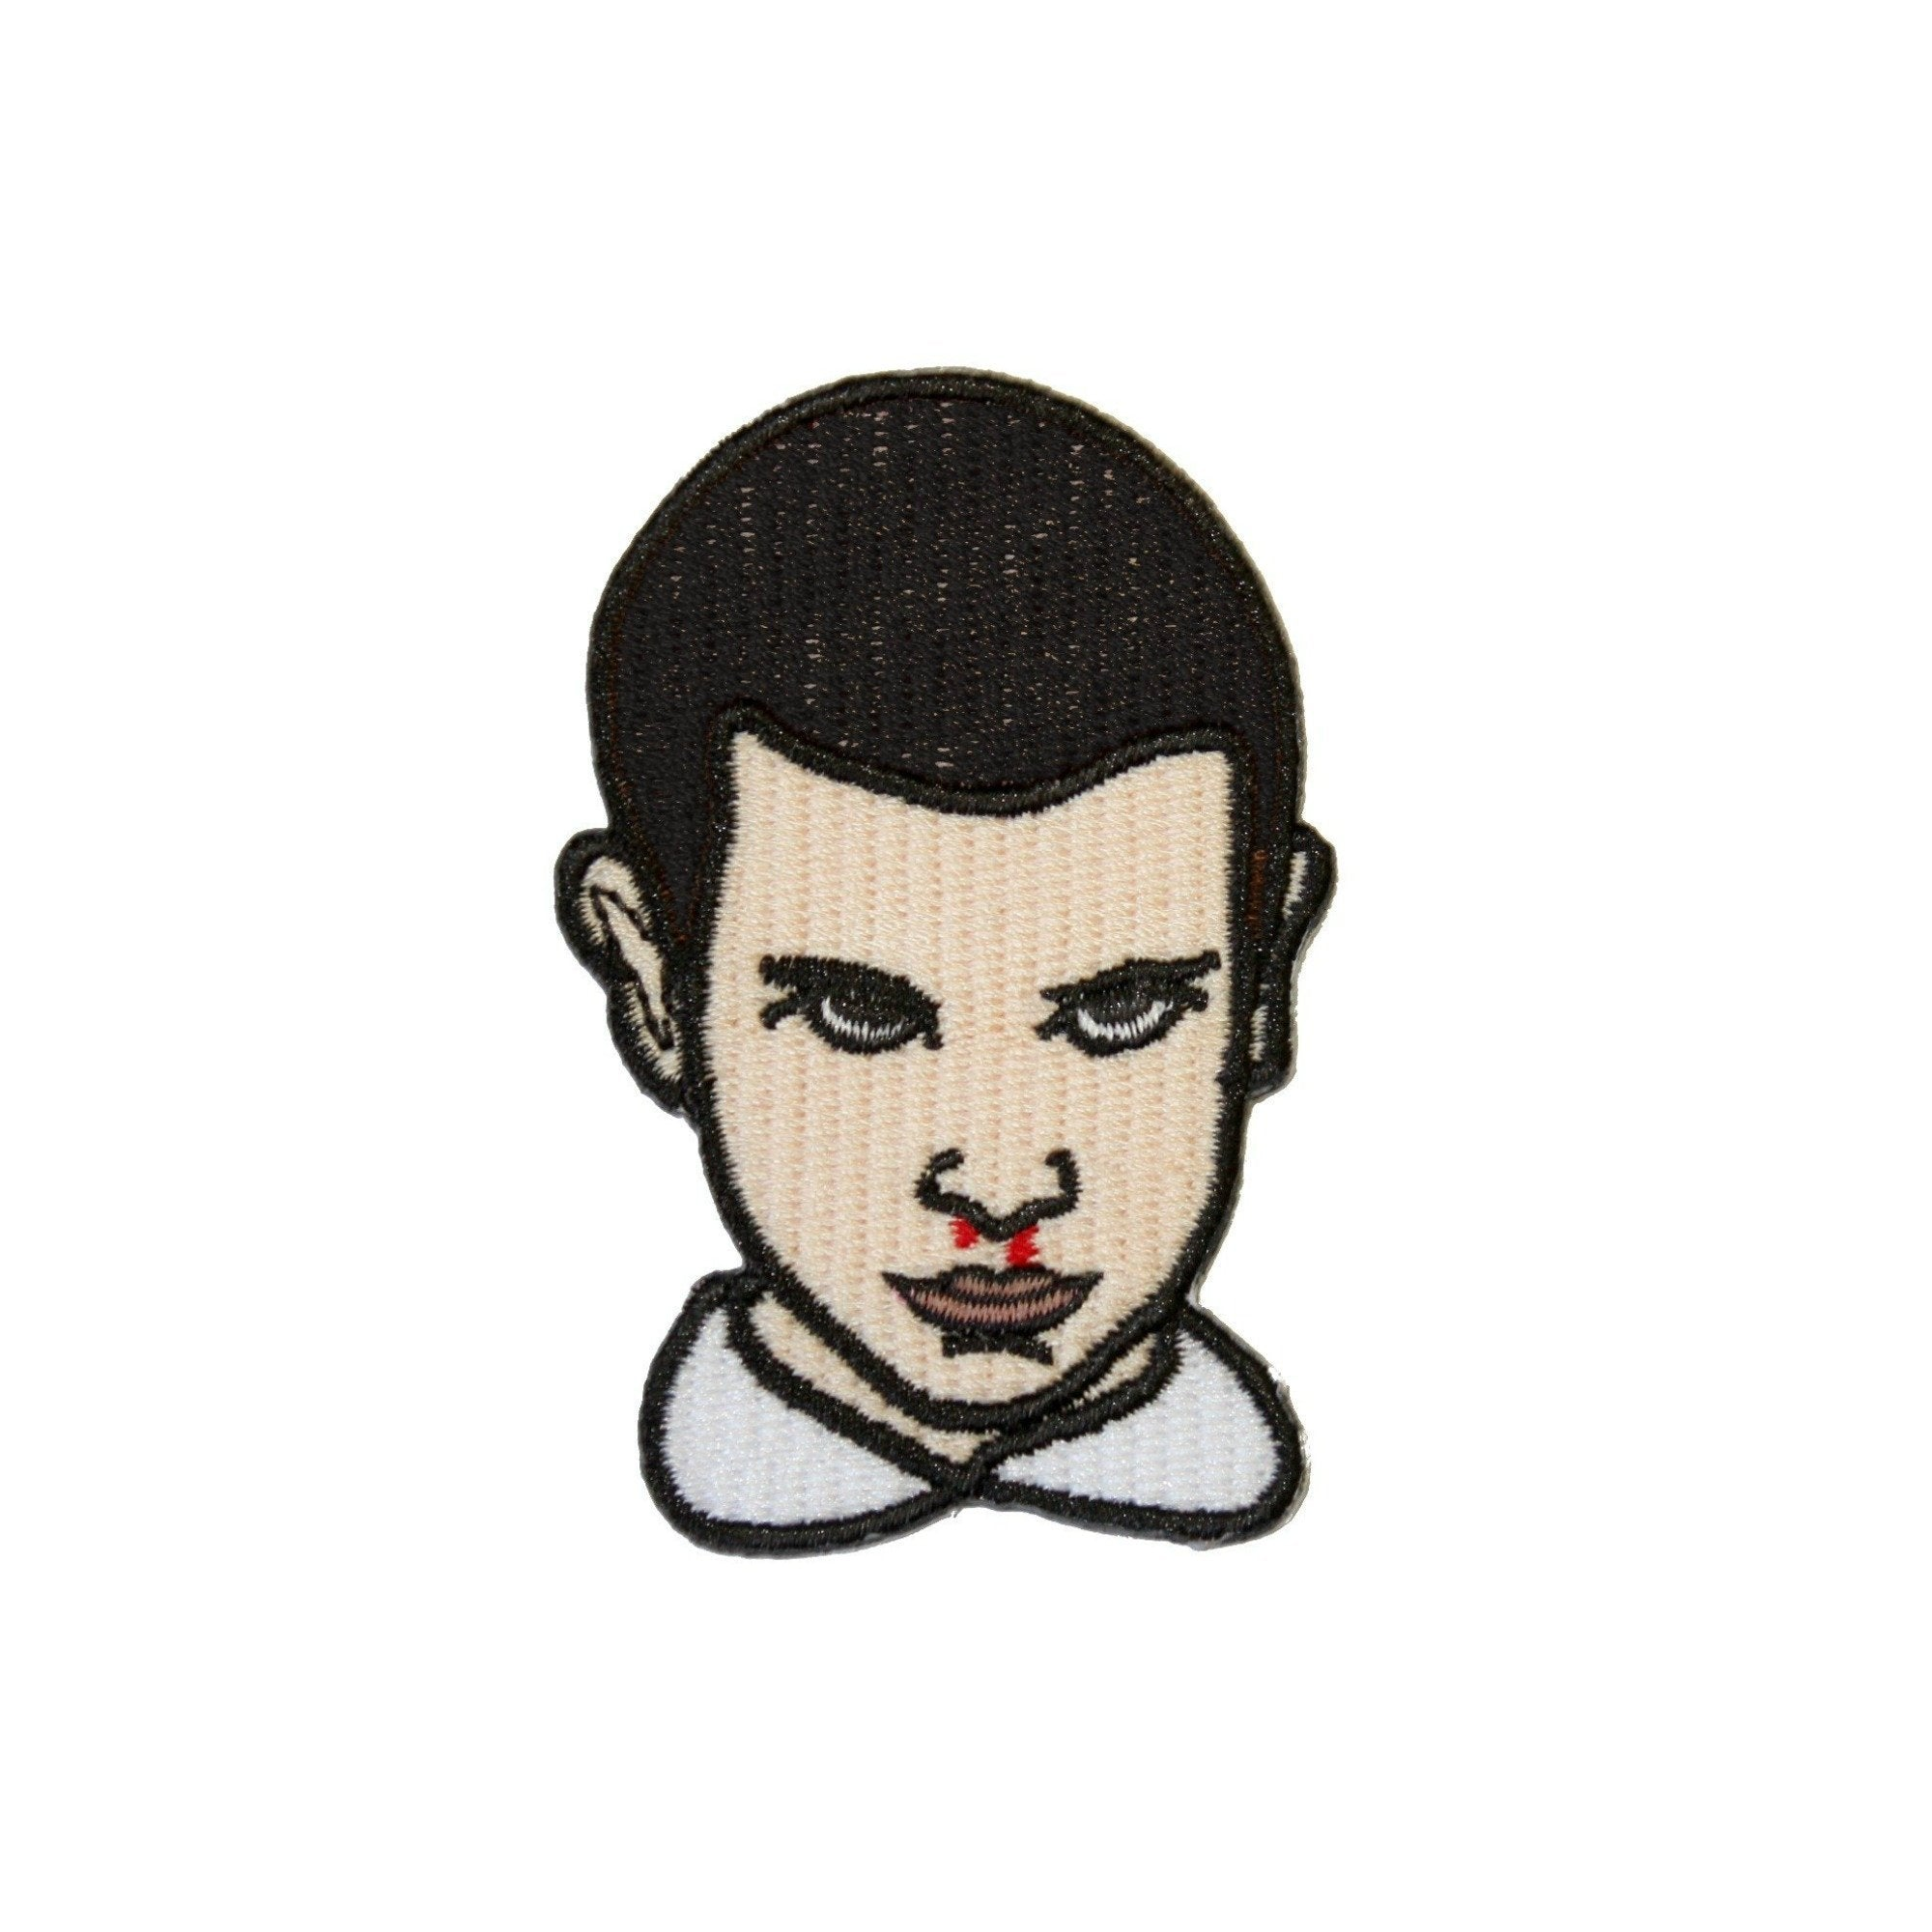 Stranger Things Eleven Iron On Patch - Minimum Mouse